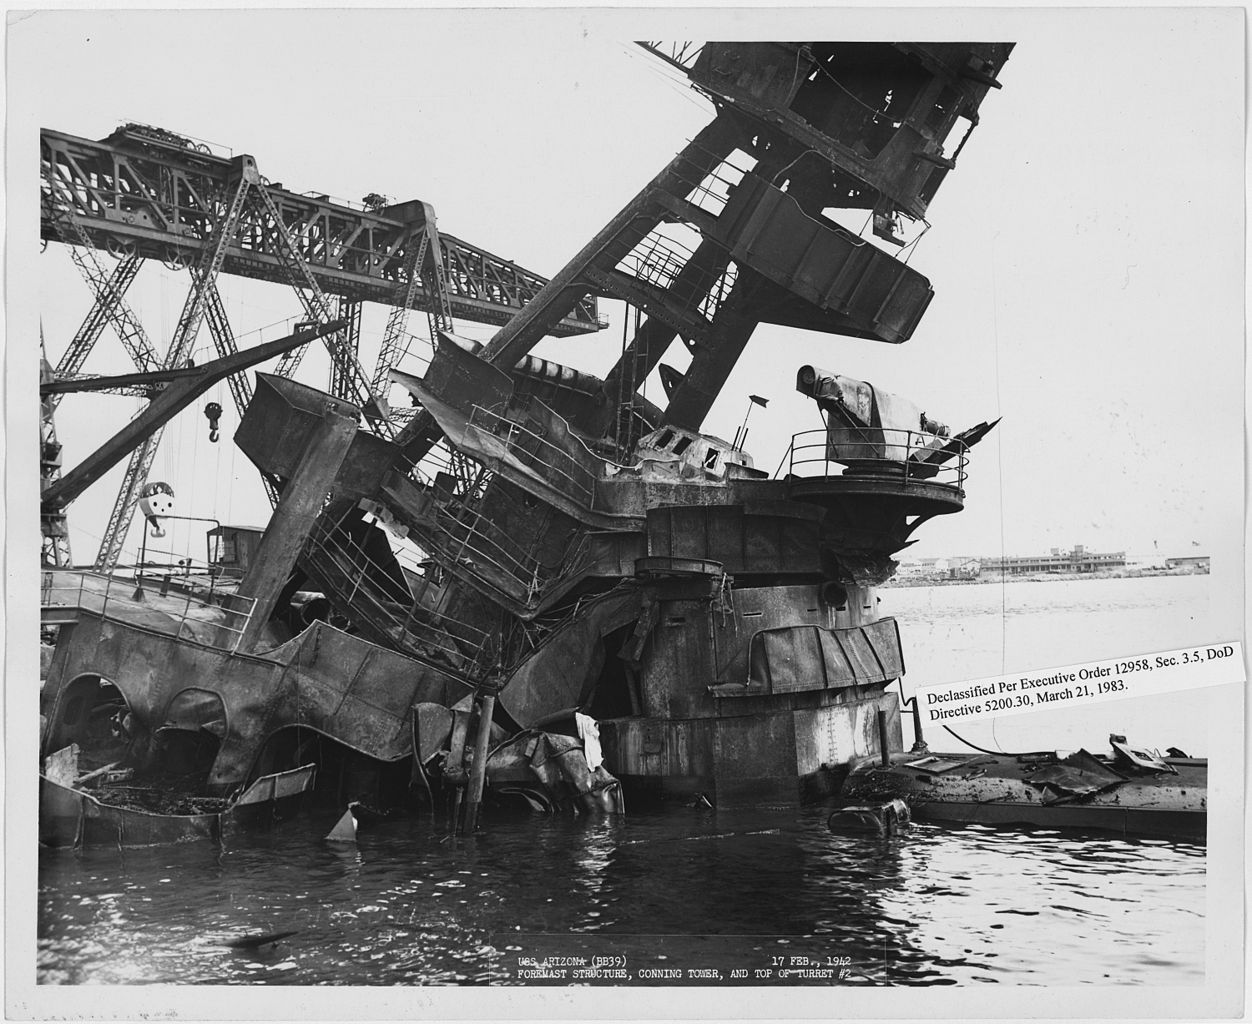 39 Best Images About South Pacific On Pinterest: File:USS Arizona (BB39) Foremast Structure, Conning Tower